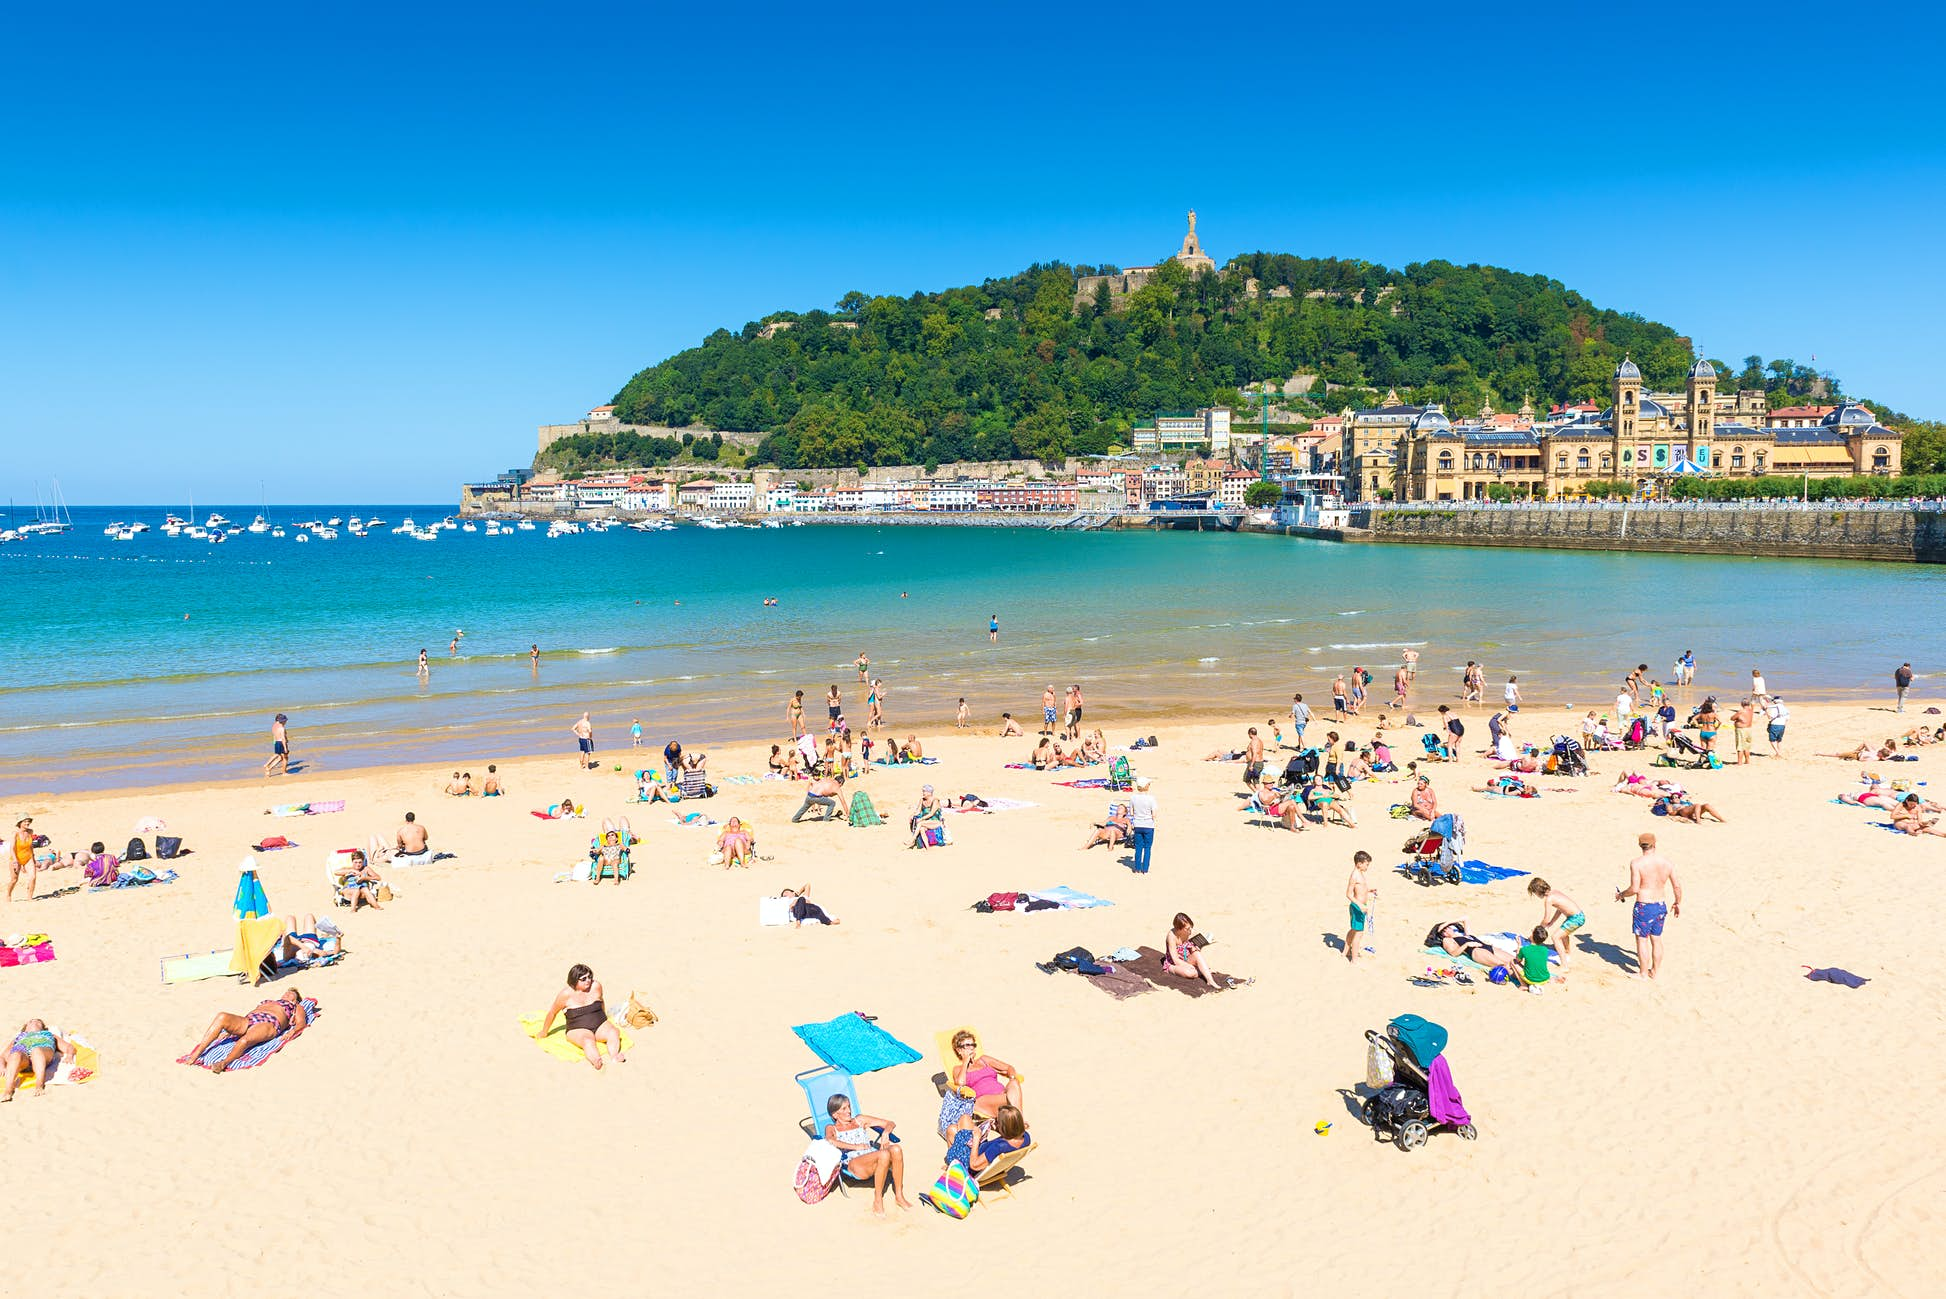 New social distancing measures will apply to beaches and parks ©Alberto Loyo/Shutterstock